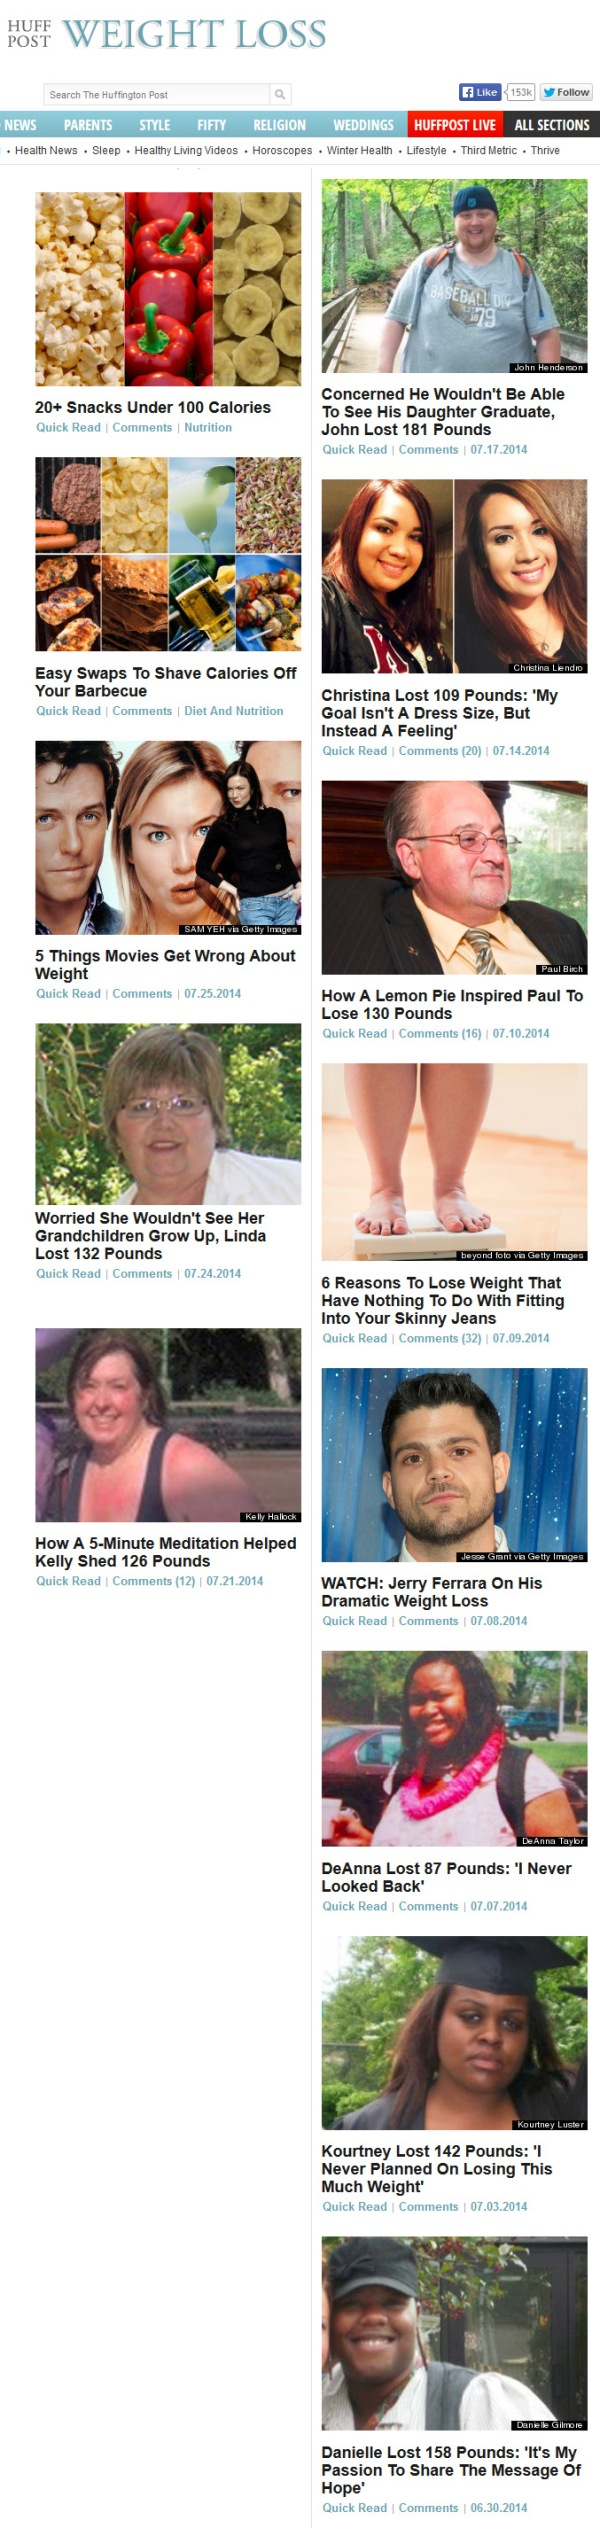 HuffPost Weight Loss